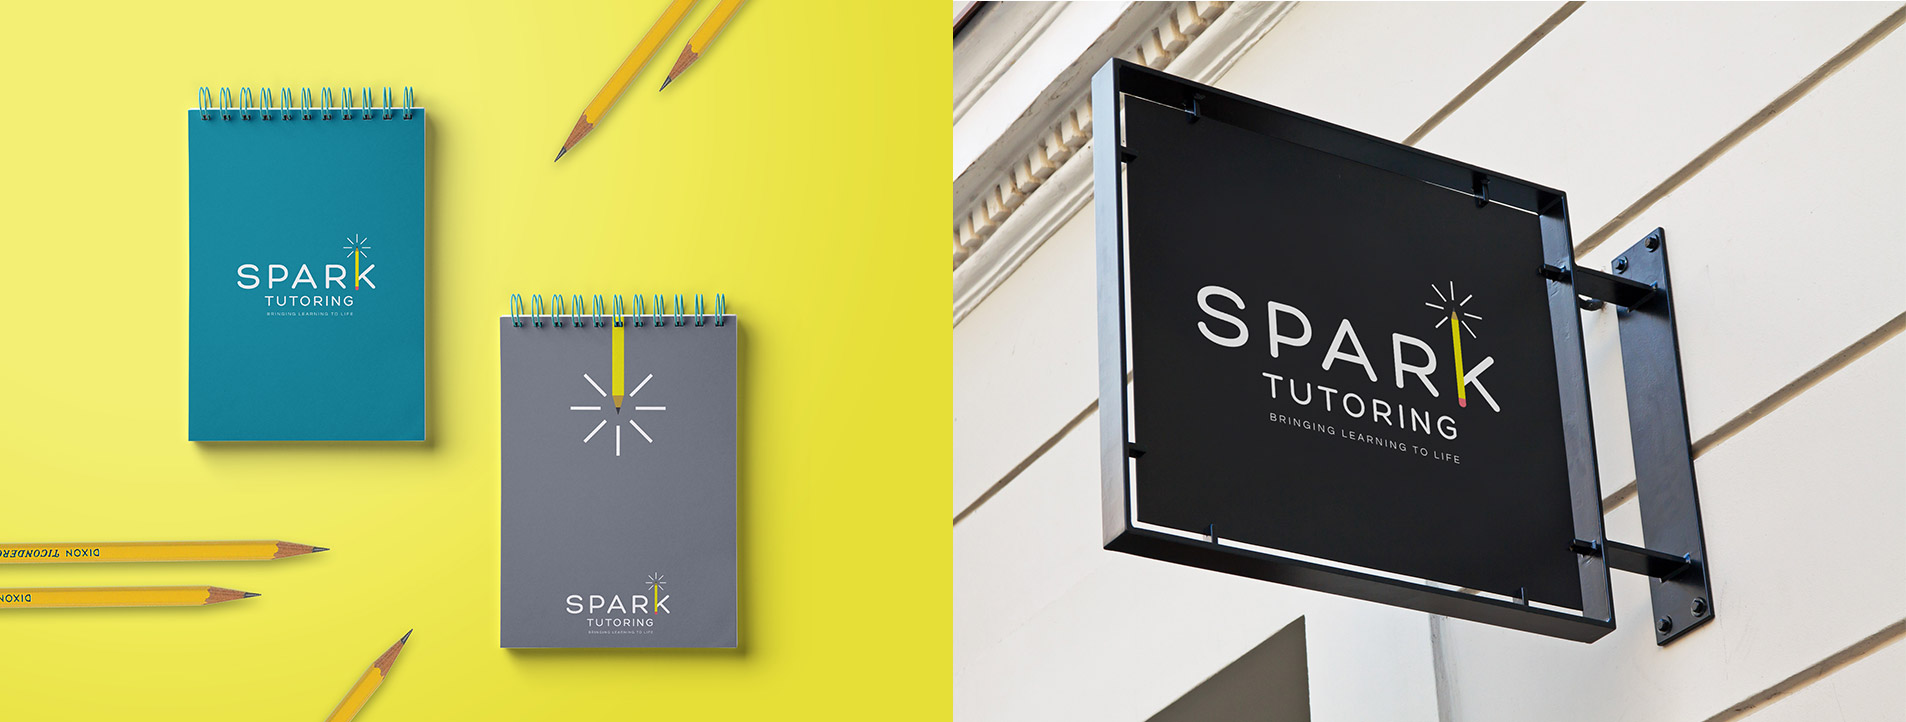 logo design for spark tutoring